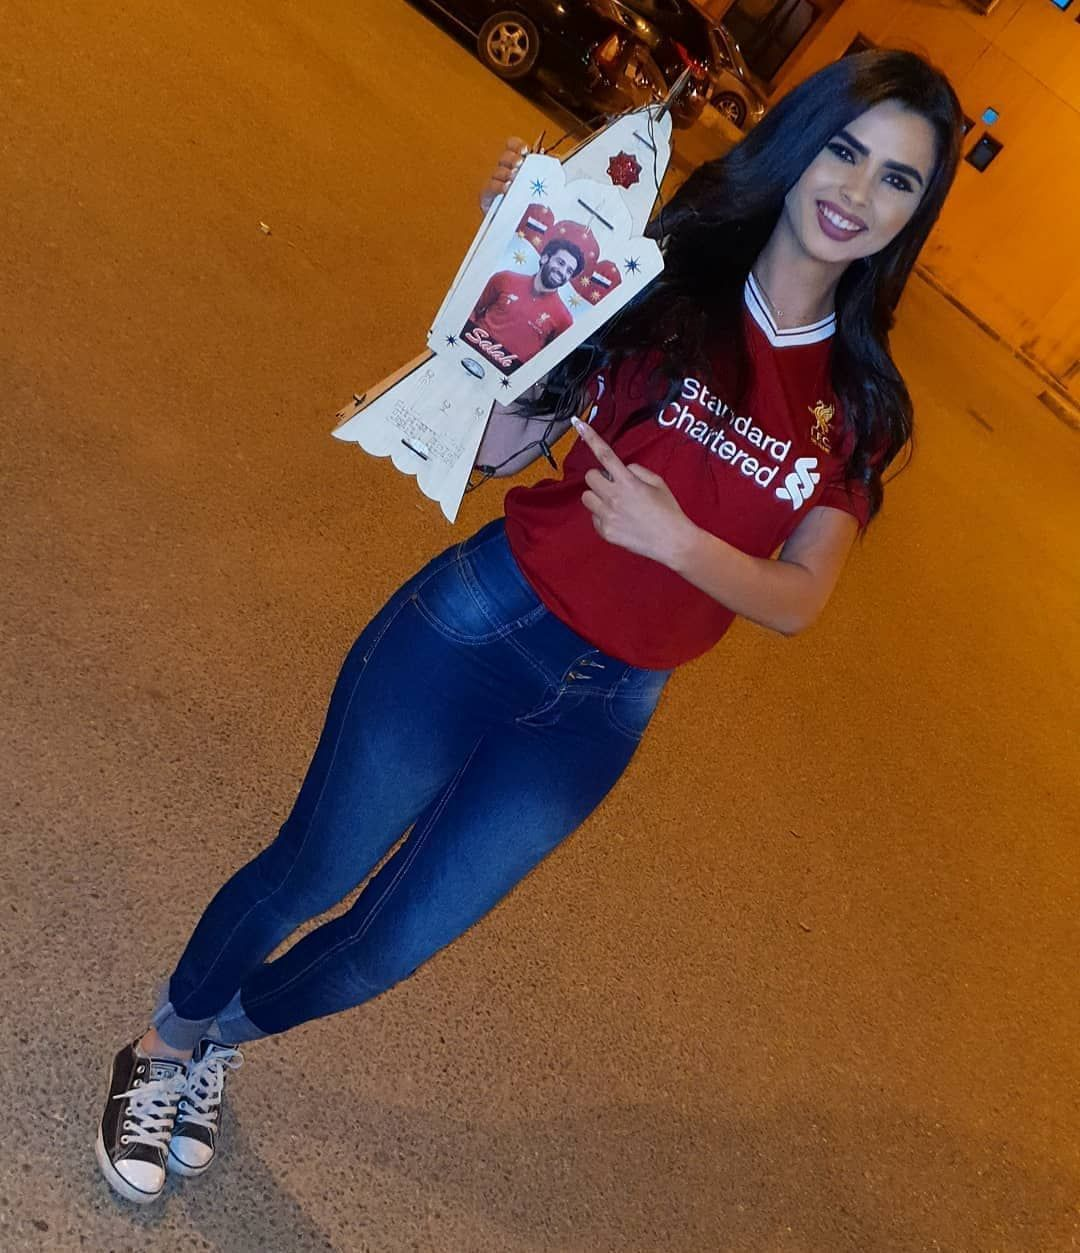 3 253 Likes 20 Comments Anything Liverpool 102k Anythingliverpool On Instagram Egyptian Tv Sports Presenter Sports Presenters Tv Sport Soccer Girl